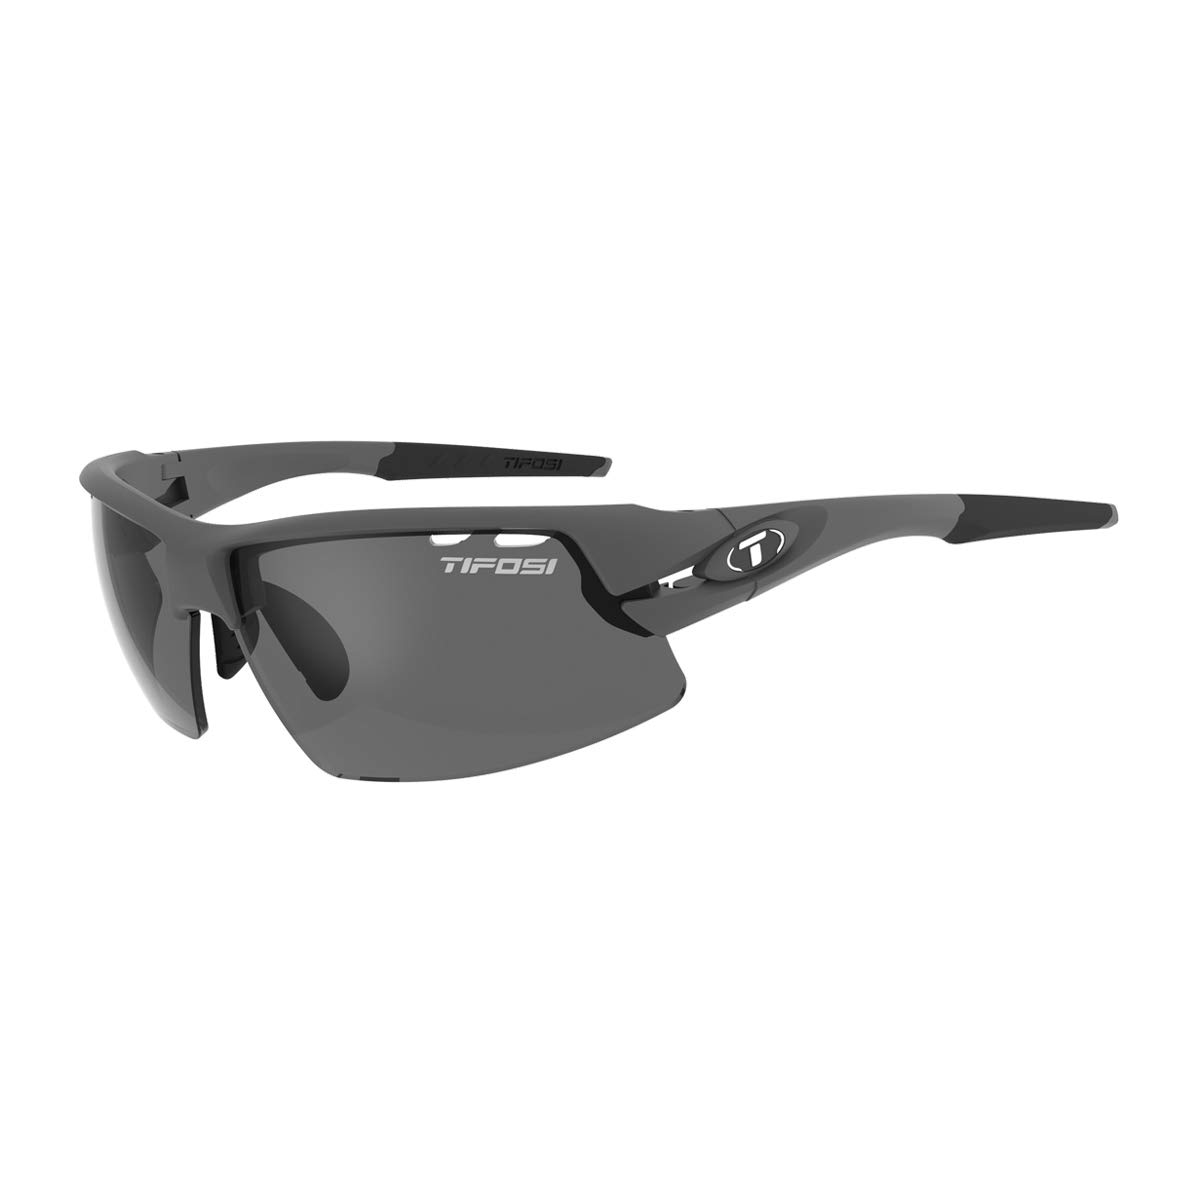 Tifosi Crit Polarized Fototec Matte Gunmetal - Smoke Polarized Fototec by Tifosi